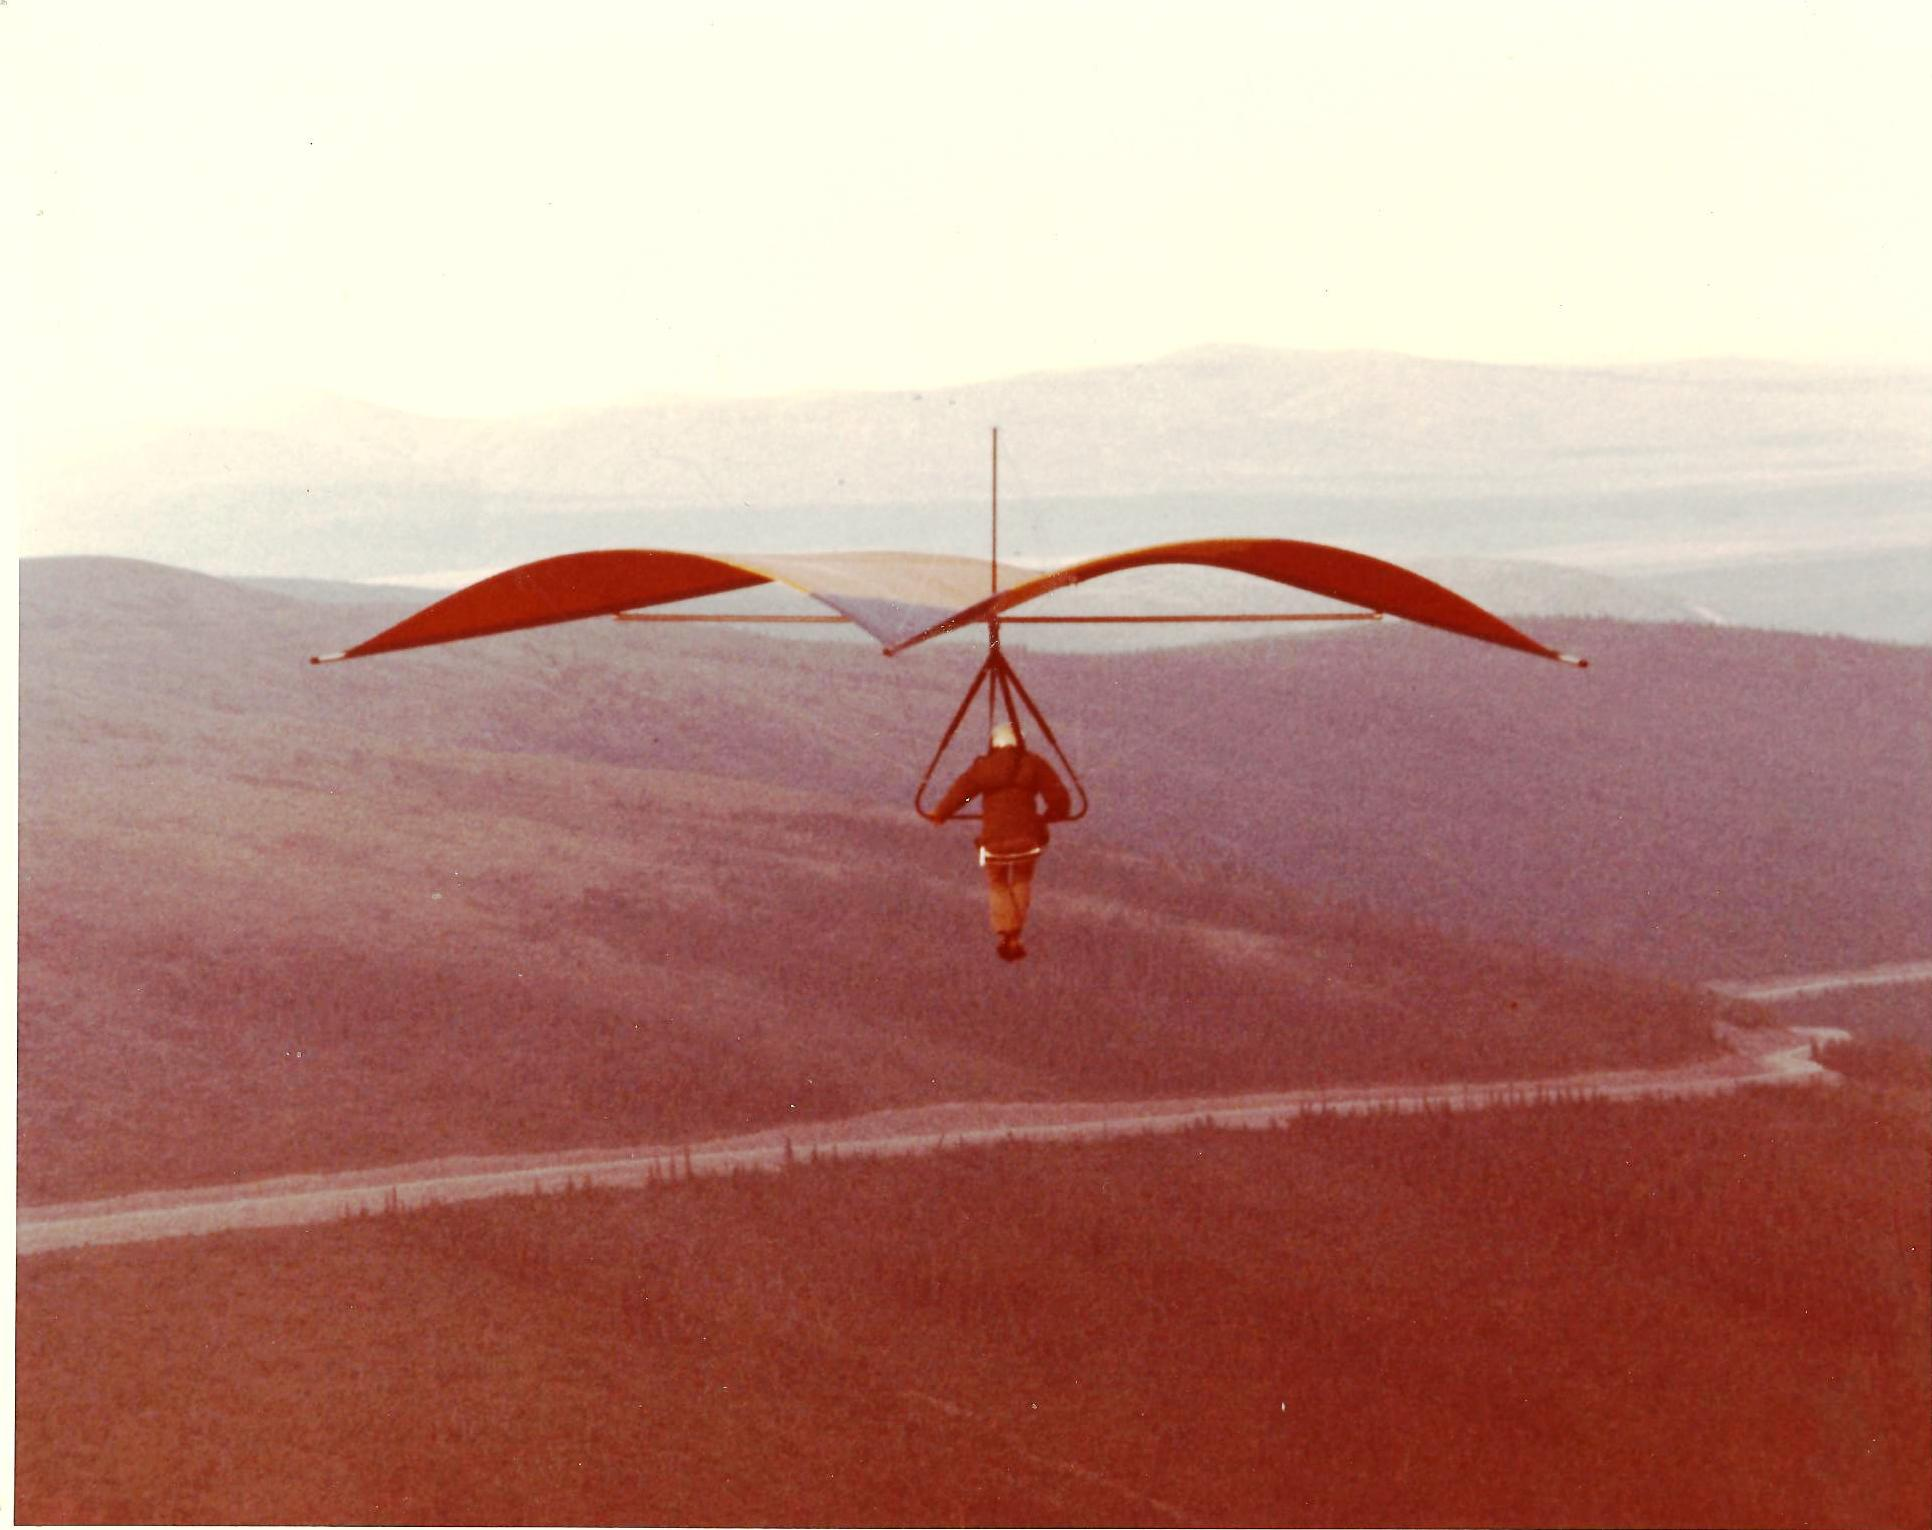 bill-sheka-on-first-flight-above-arctic-circle-august-1975-heading-down-the-road-to-circle-hot-springs-in-a-seagull-3